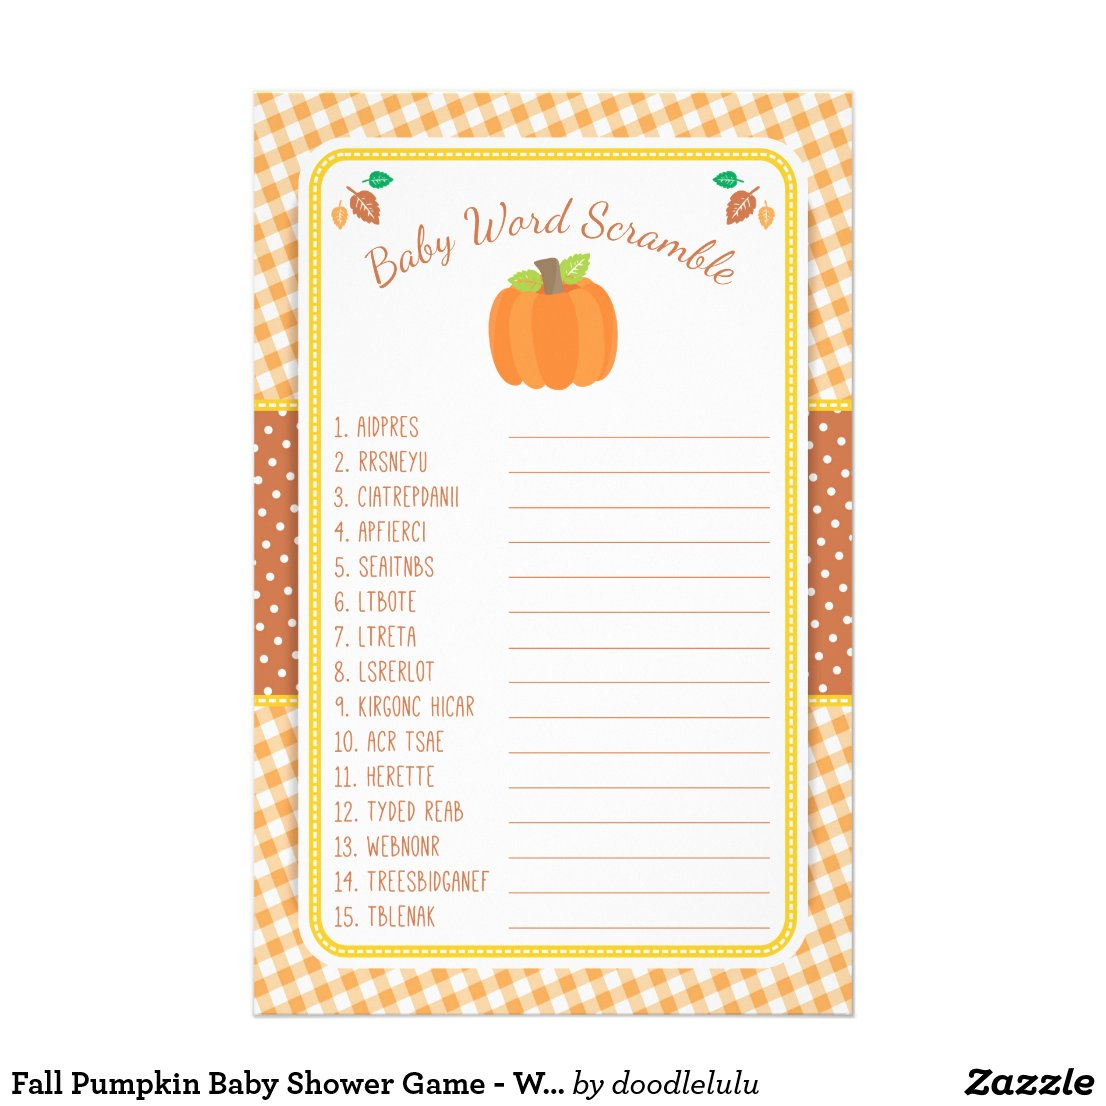 Fall Pumpkin Baby Shower Game - Word Scramble Flyer